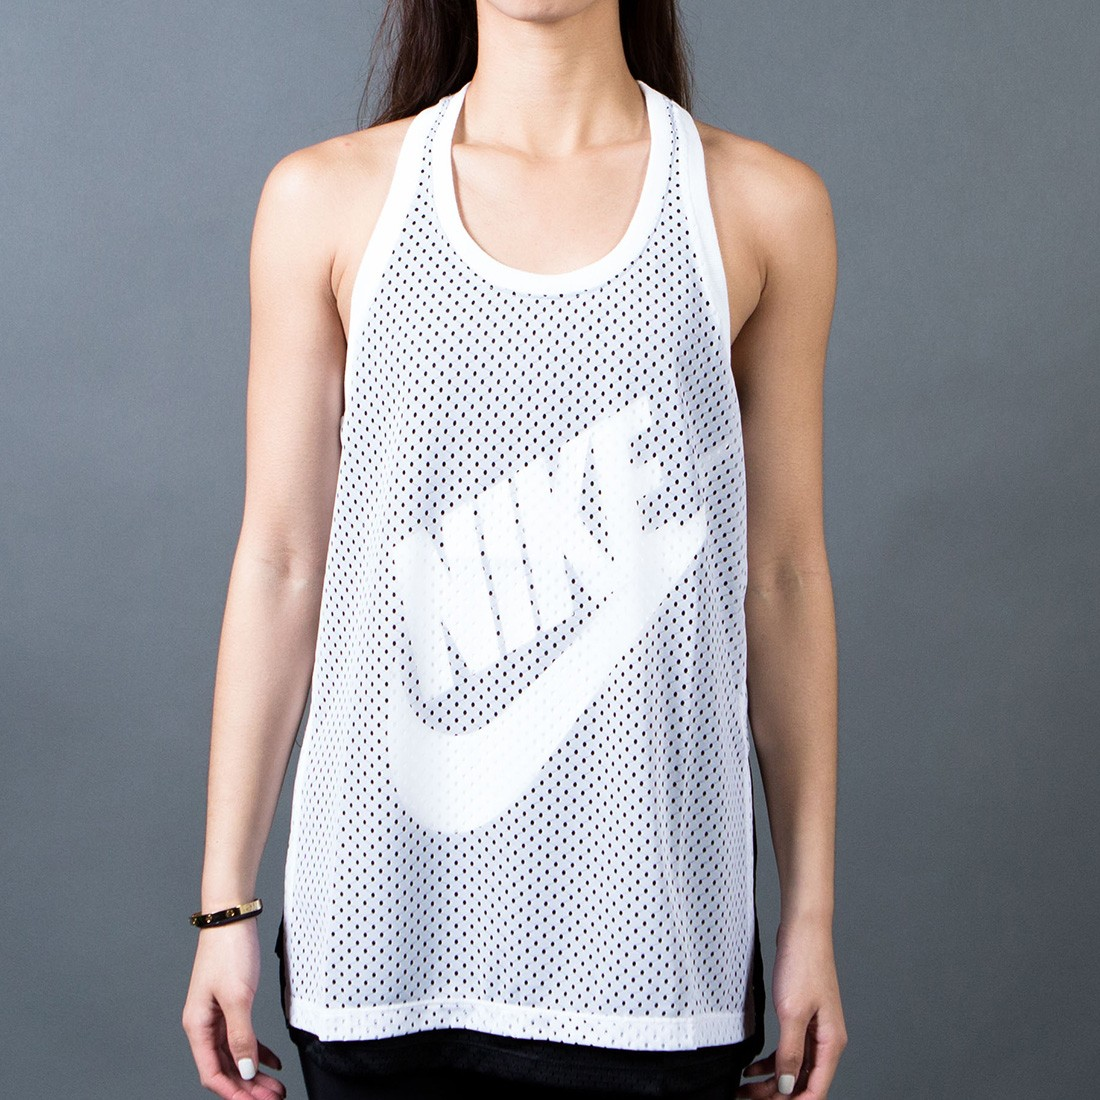 Nike Women Mesh Tank Top (white / black / black / white)